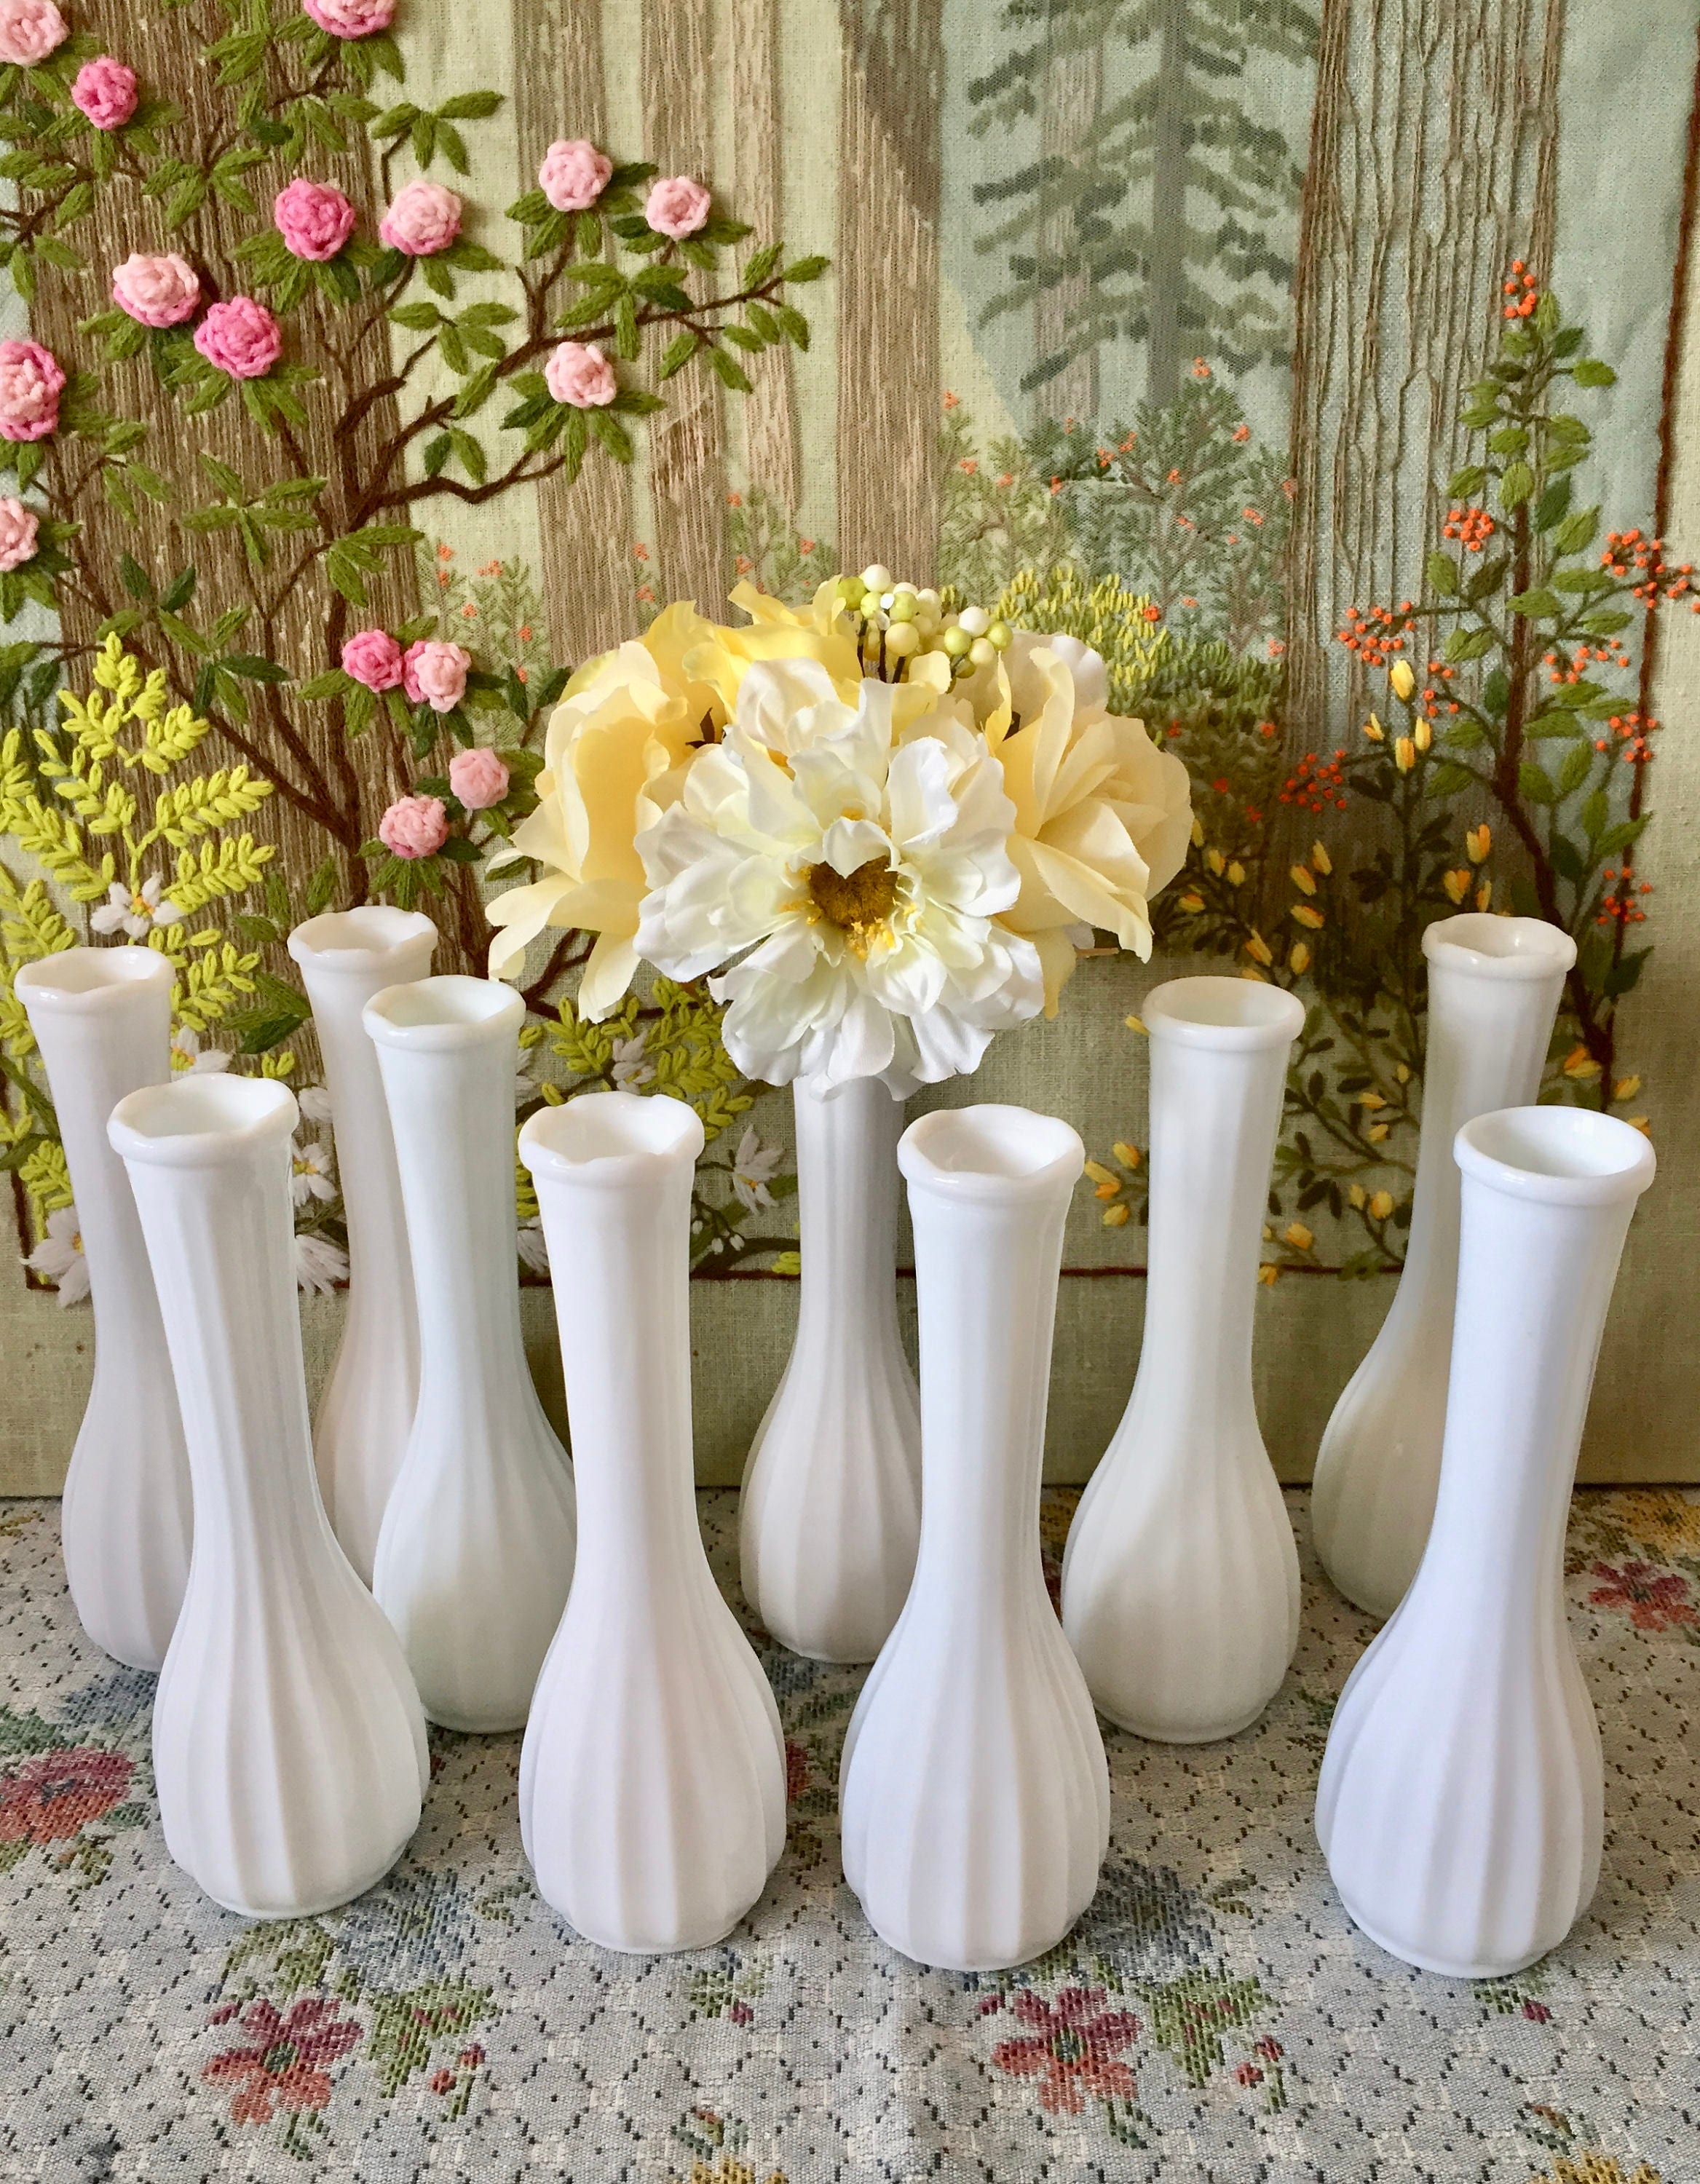 Milk glass vase wedding vases for centerpieces vases for zoom floridaeventfo Image collections